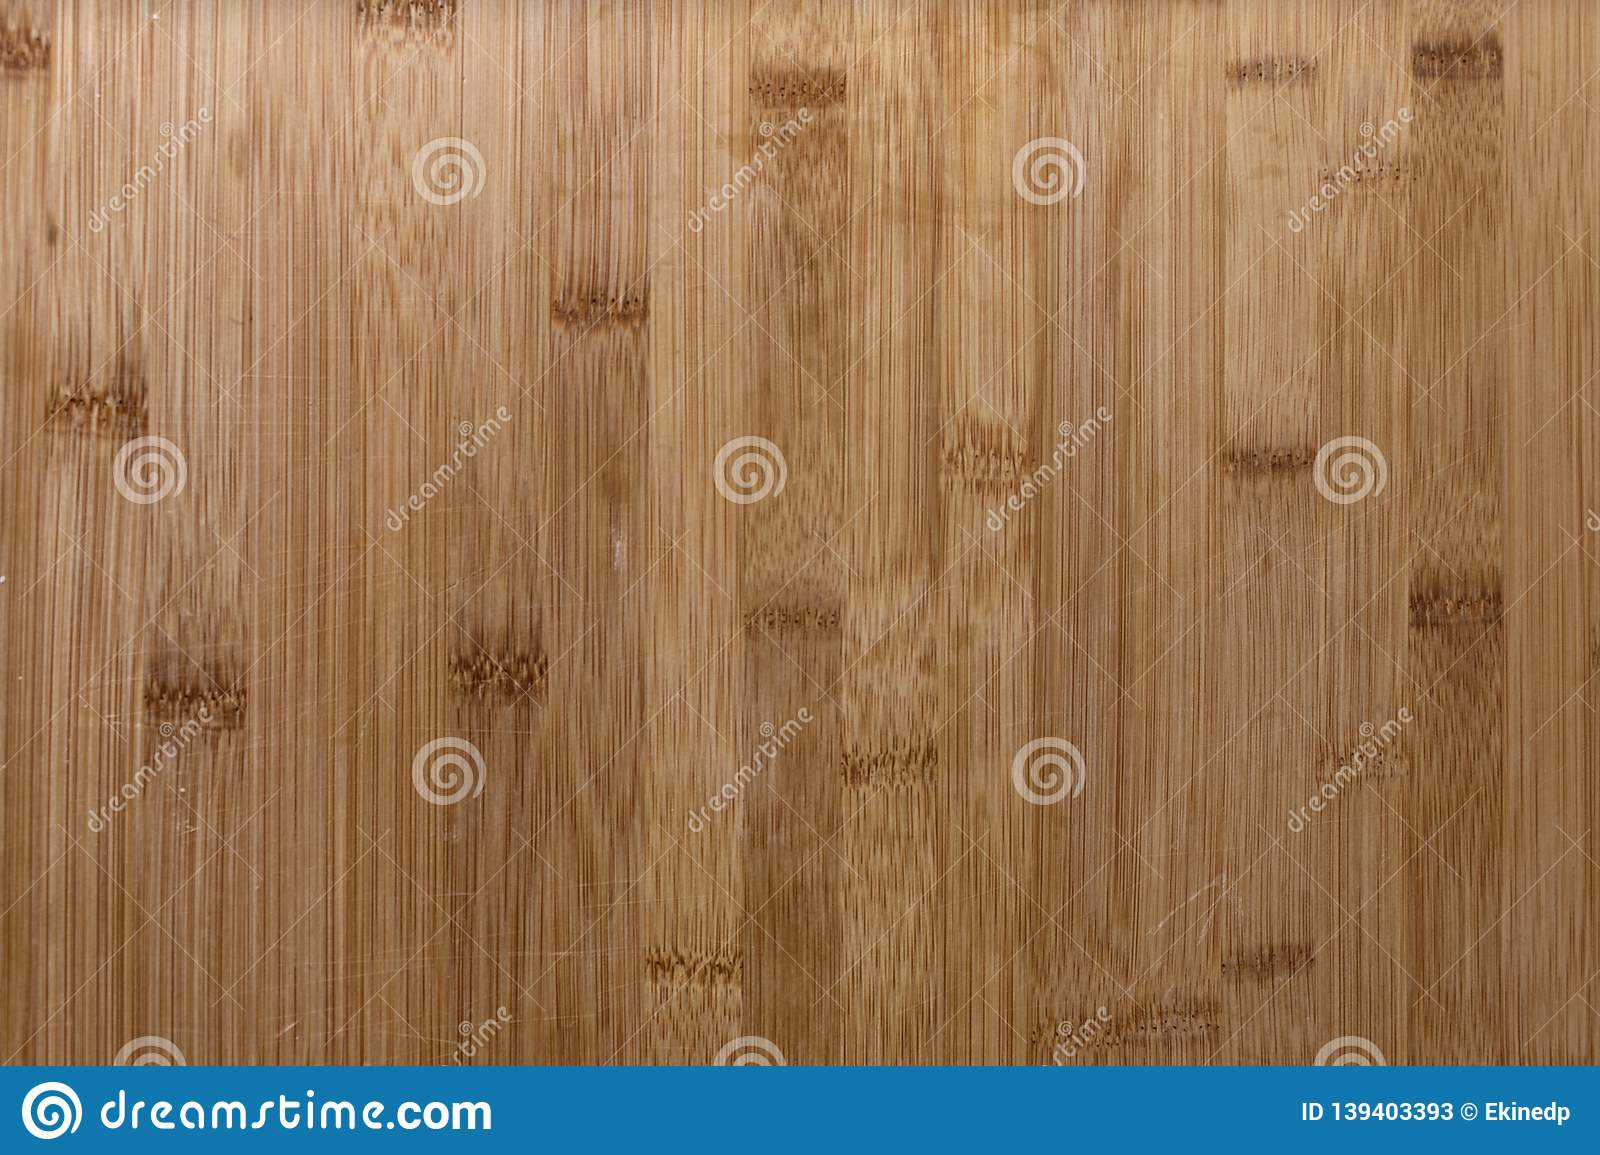 Wooden Background Wallpaper 3 Hd Stock Image Image Of High Good 139403393